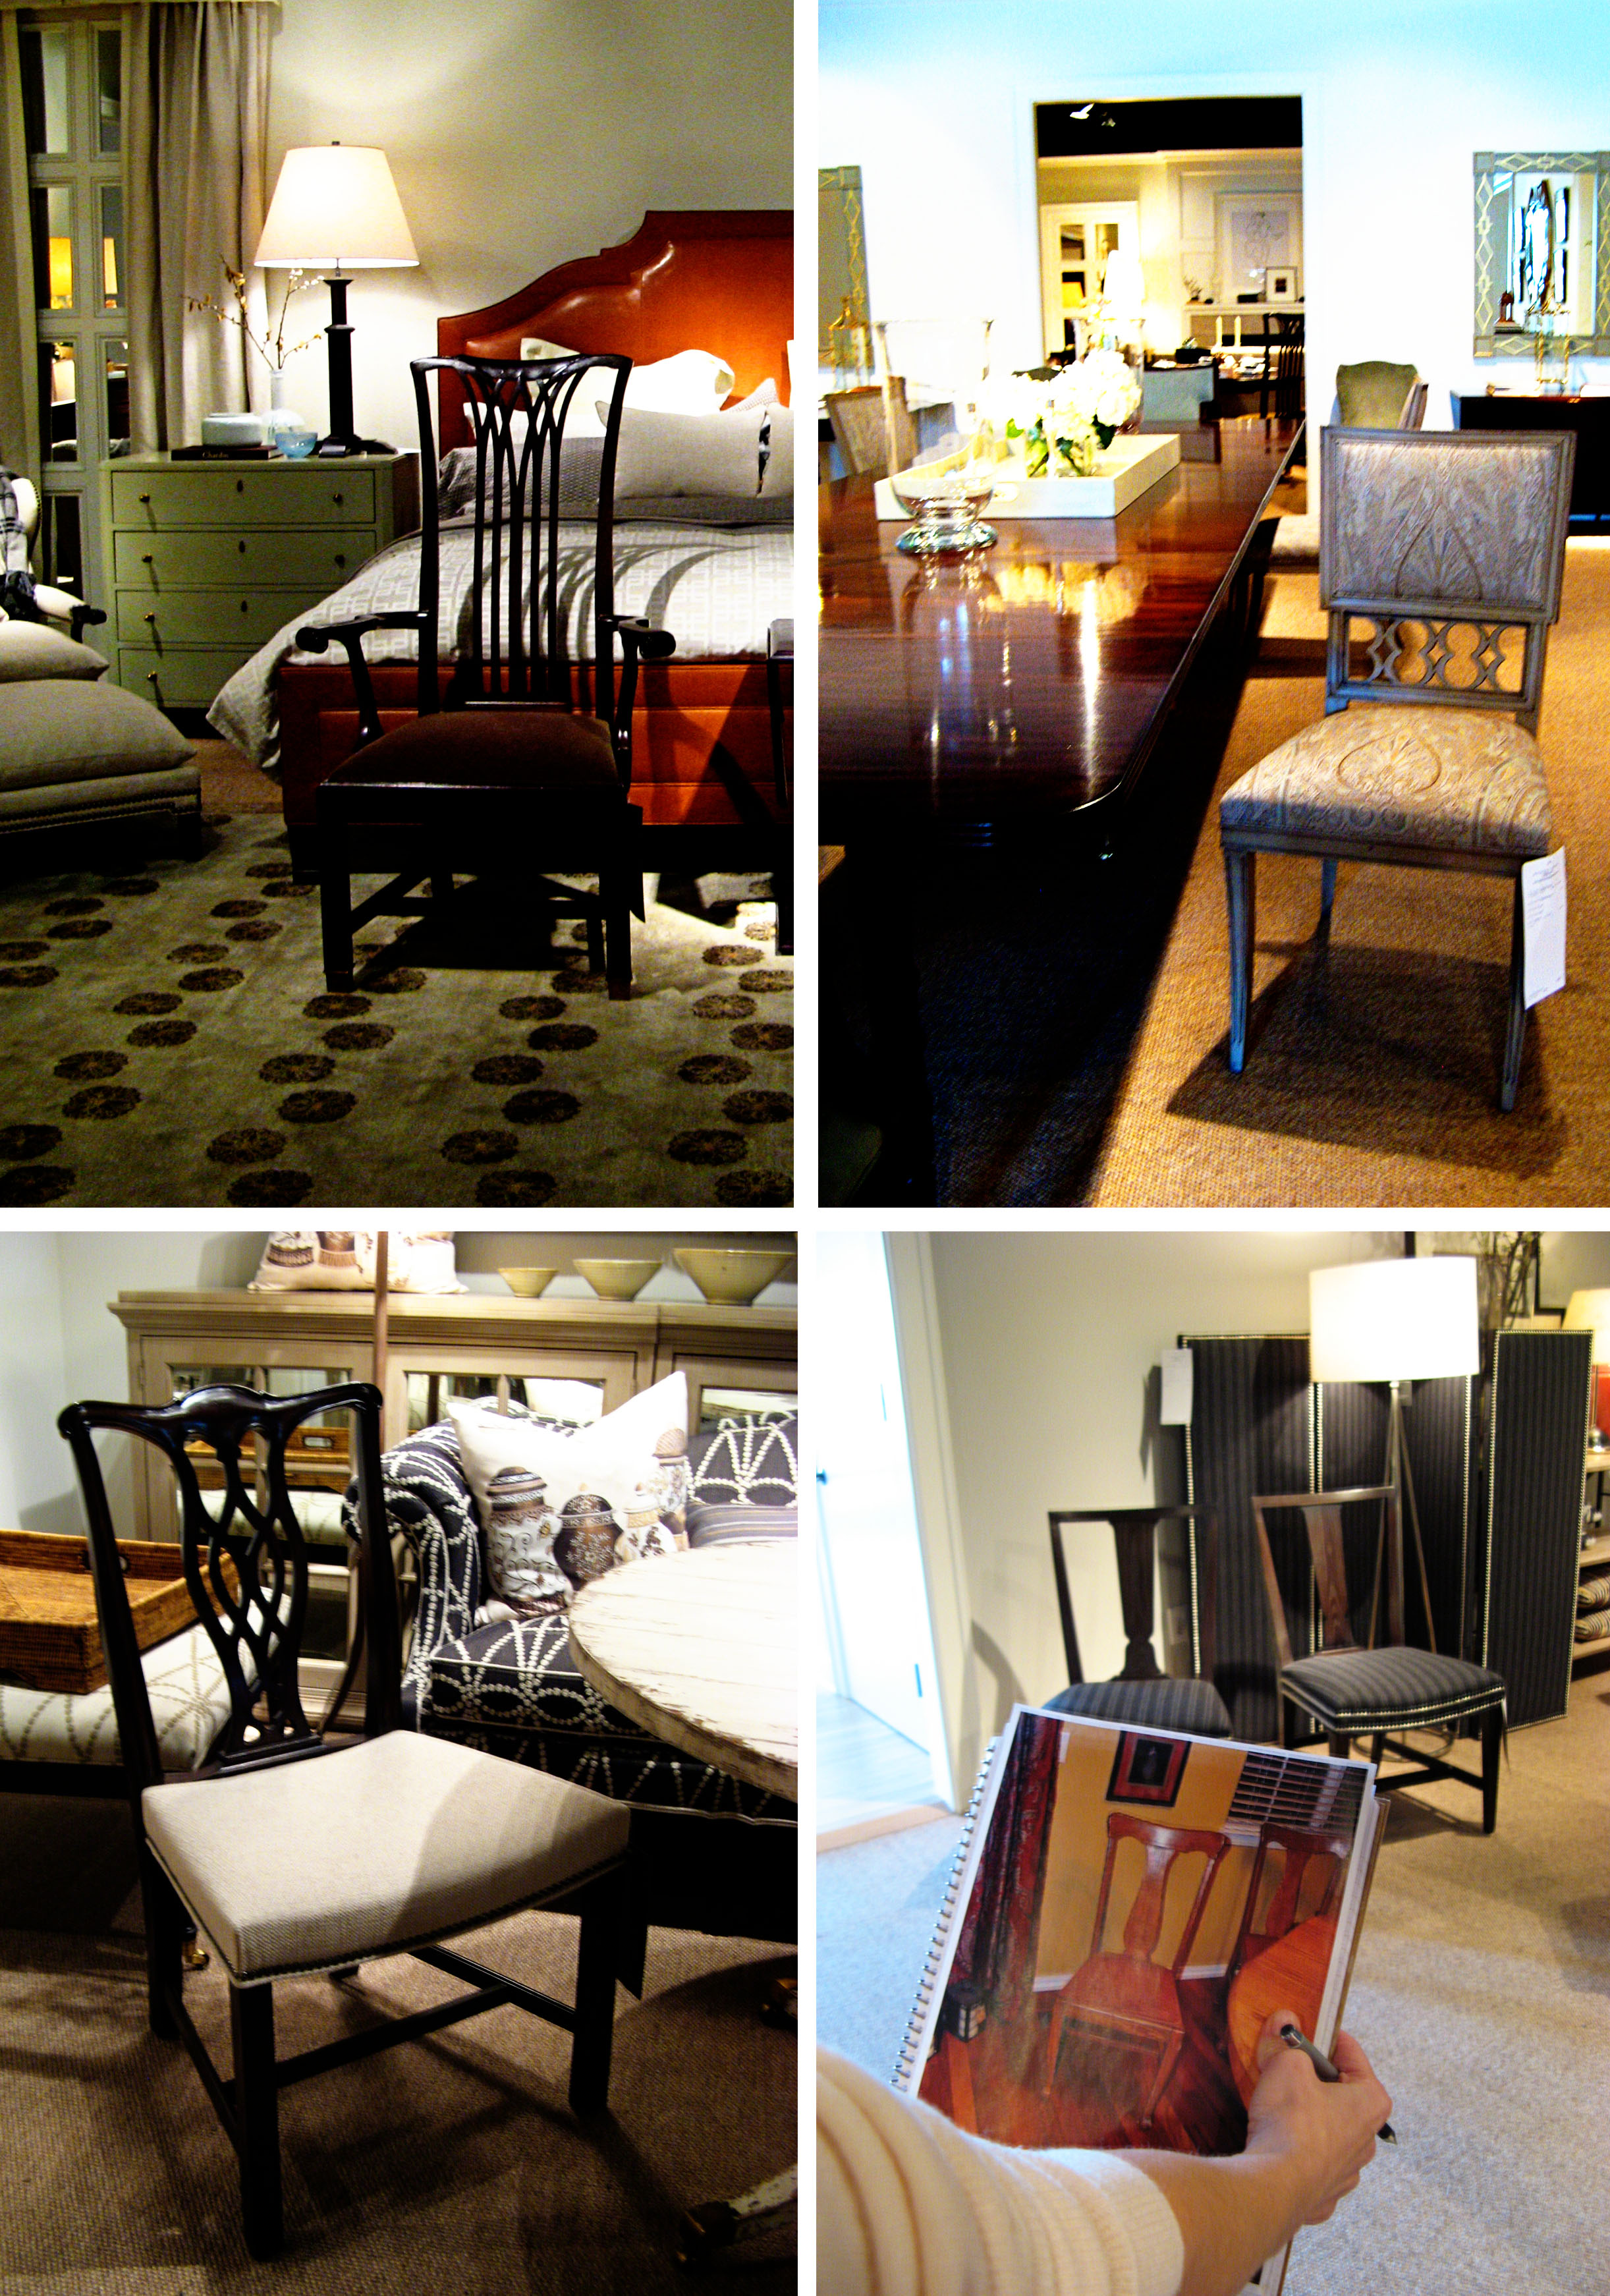 Furniture Market High Point Furniture Market Trend 4 Chairs Take Shape Design